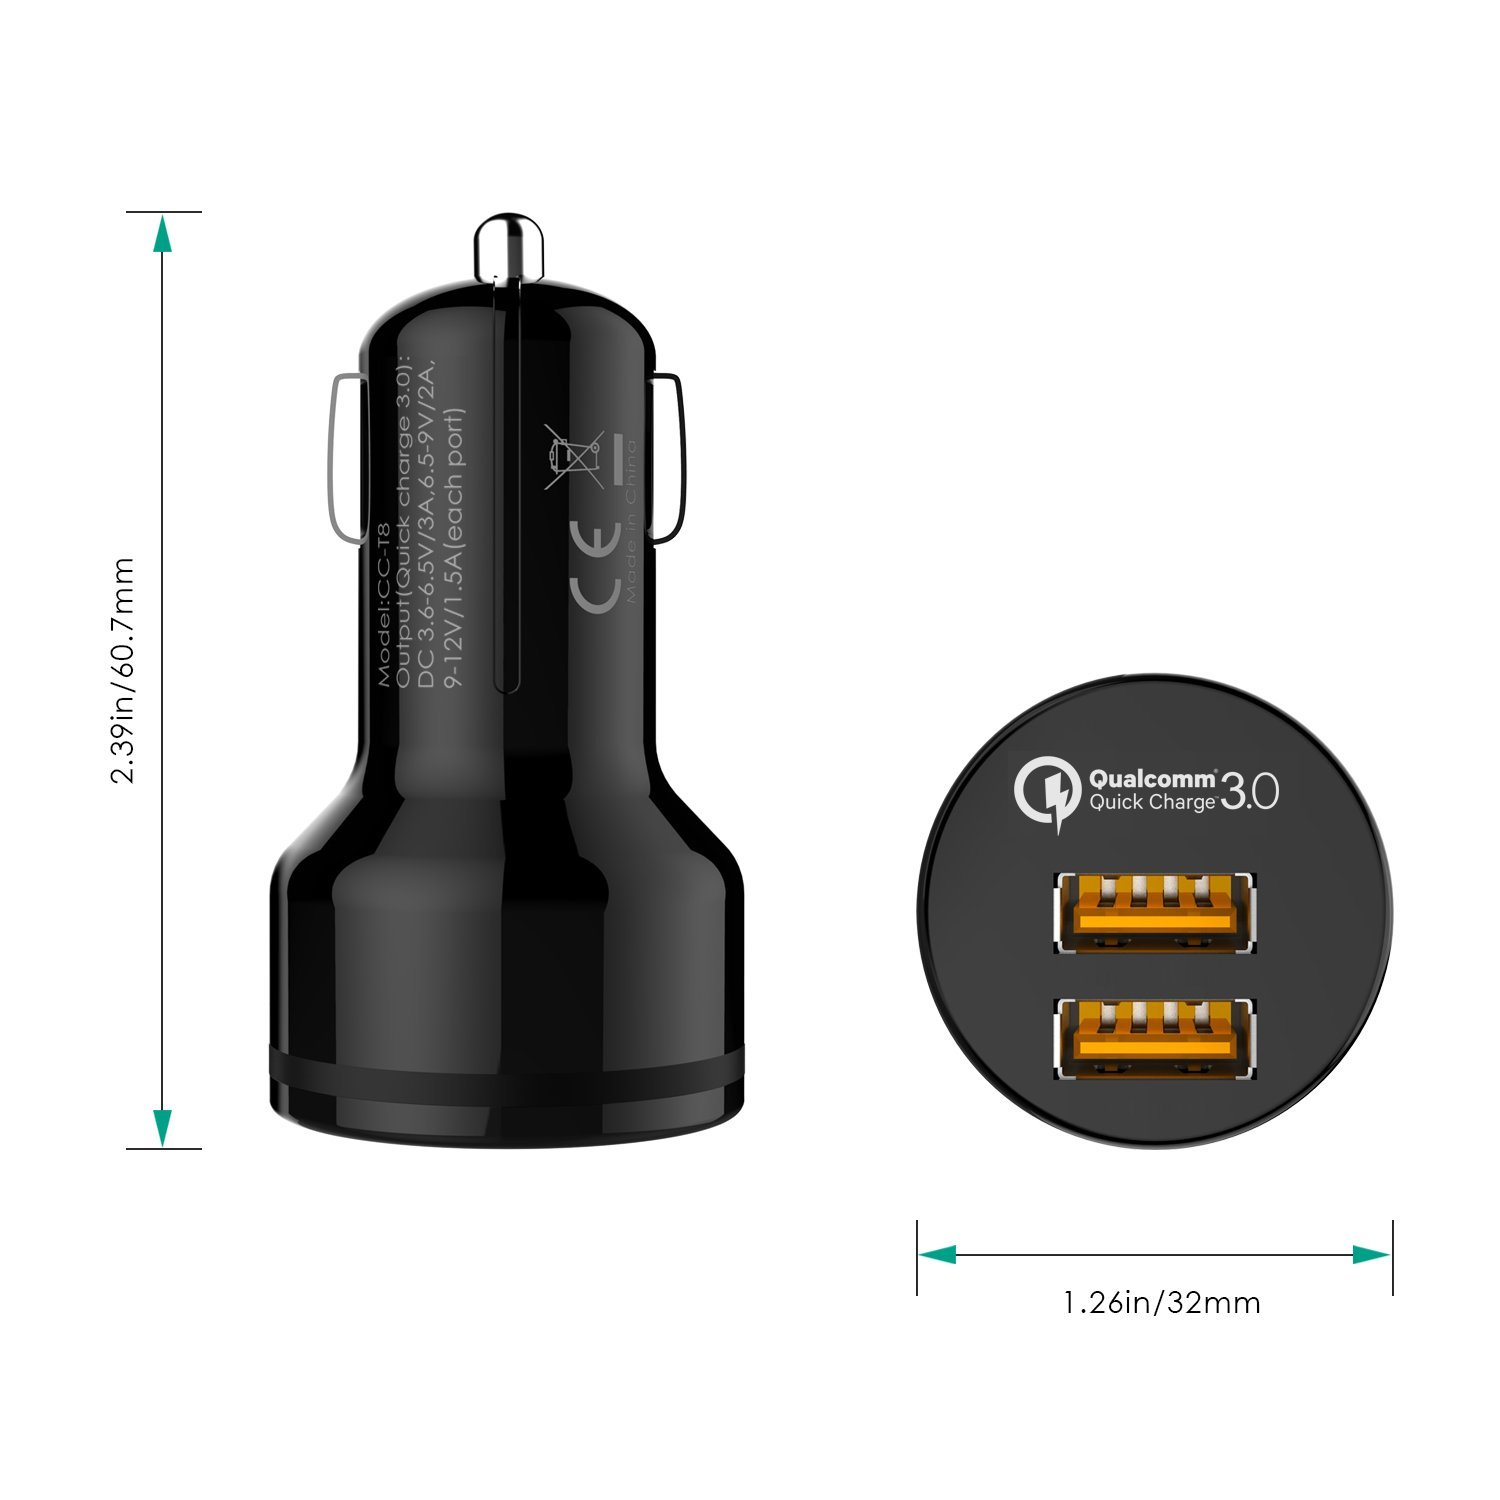 AUKEY Car Charger with Quick Charge 3.0, 39W Dual Ports for Samsung Galaxy Note8 / S9 / S8 / S8+, LG G6 / V30, HTC 10 and More   Qualcomm Certified by AUKEY (Image #6)